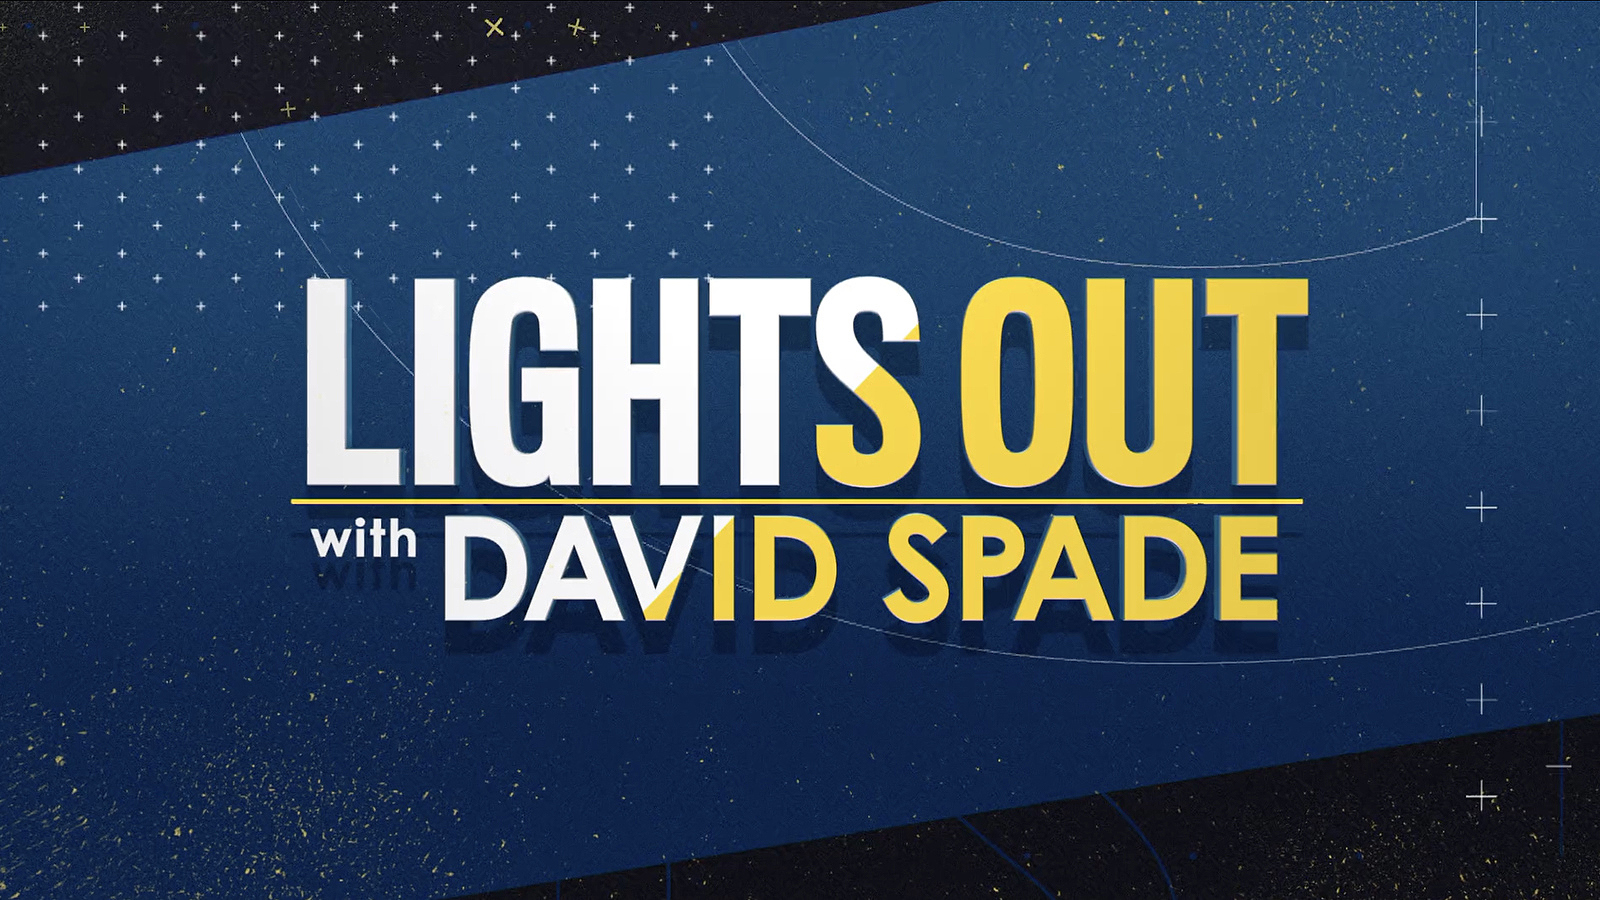 NCS_Comedy-Central_David-Spade_LightsOut_Motion-Graphics_001